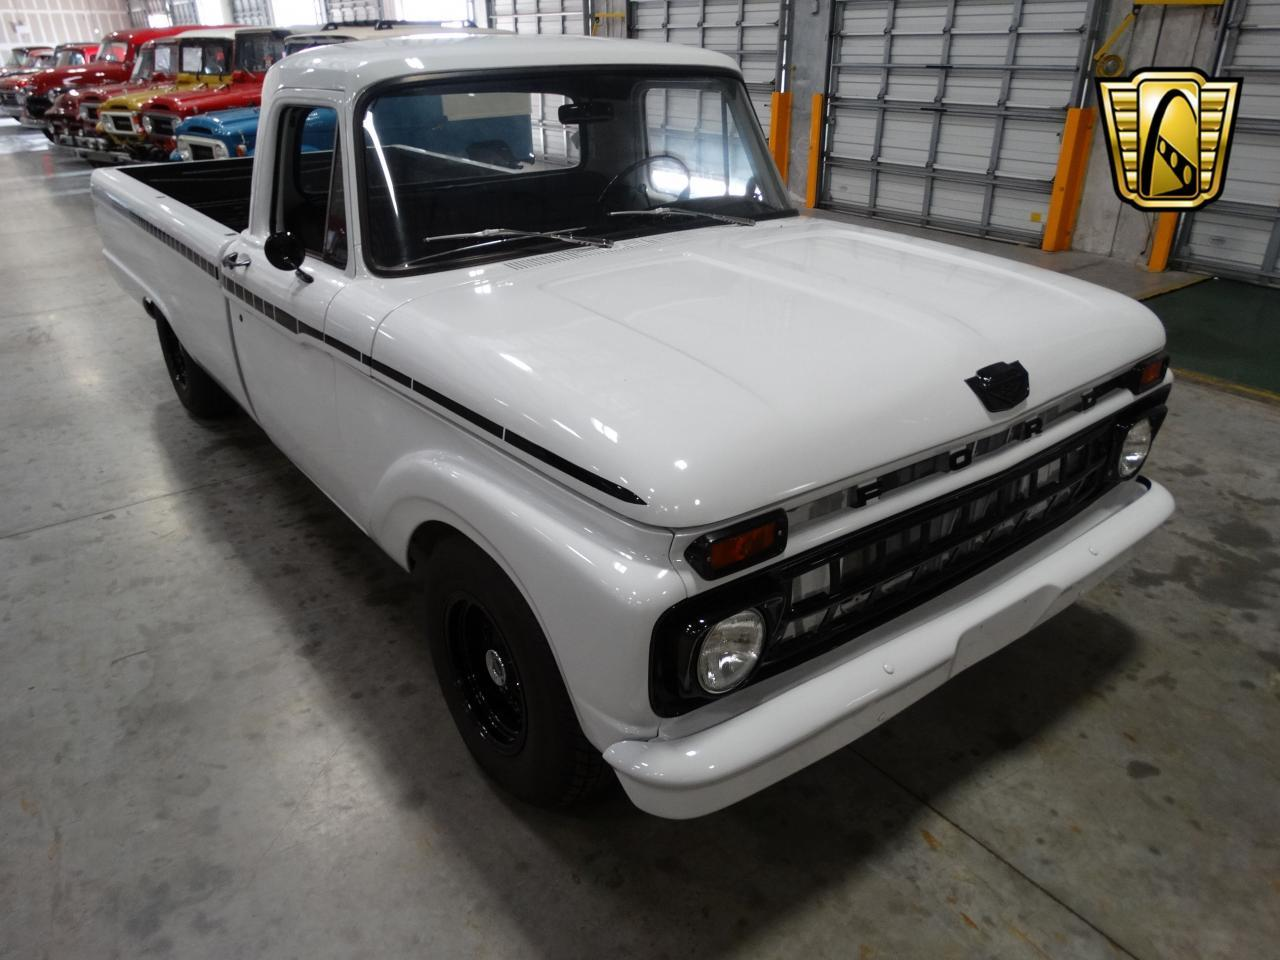 Large Picture of 1965 Ford F100 located in Florida - $18,595.00 Offered by Gateway Classic Cars - Fort Lauderdale - L5YY